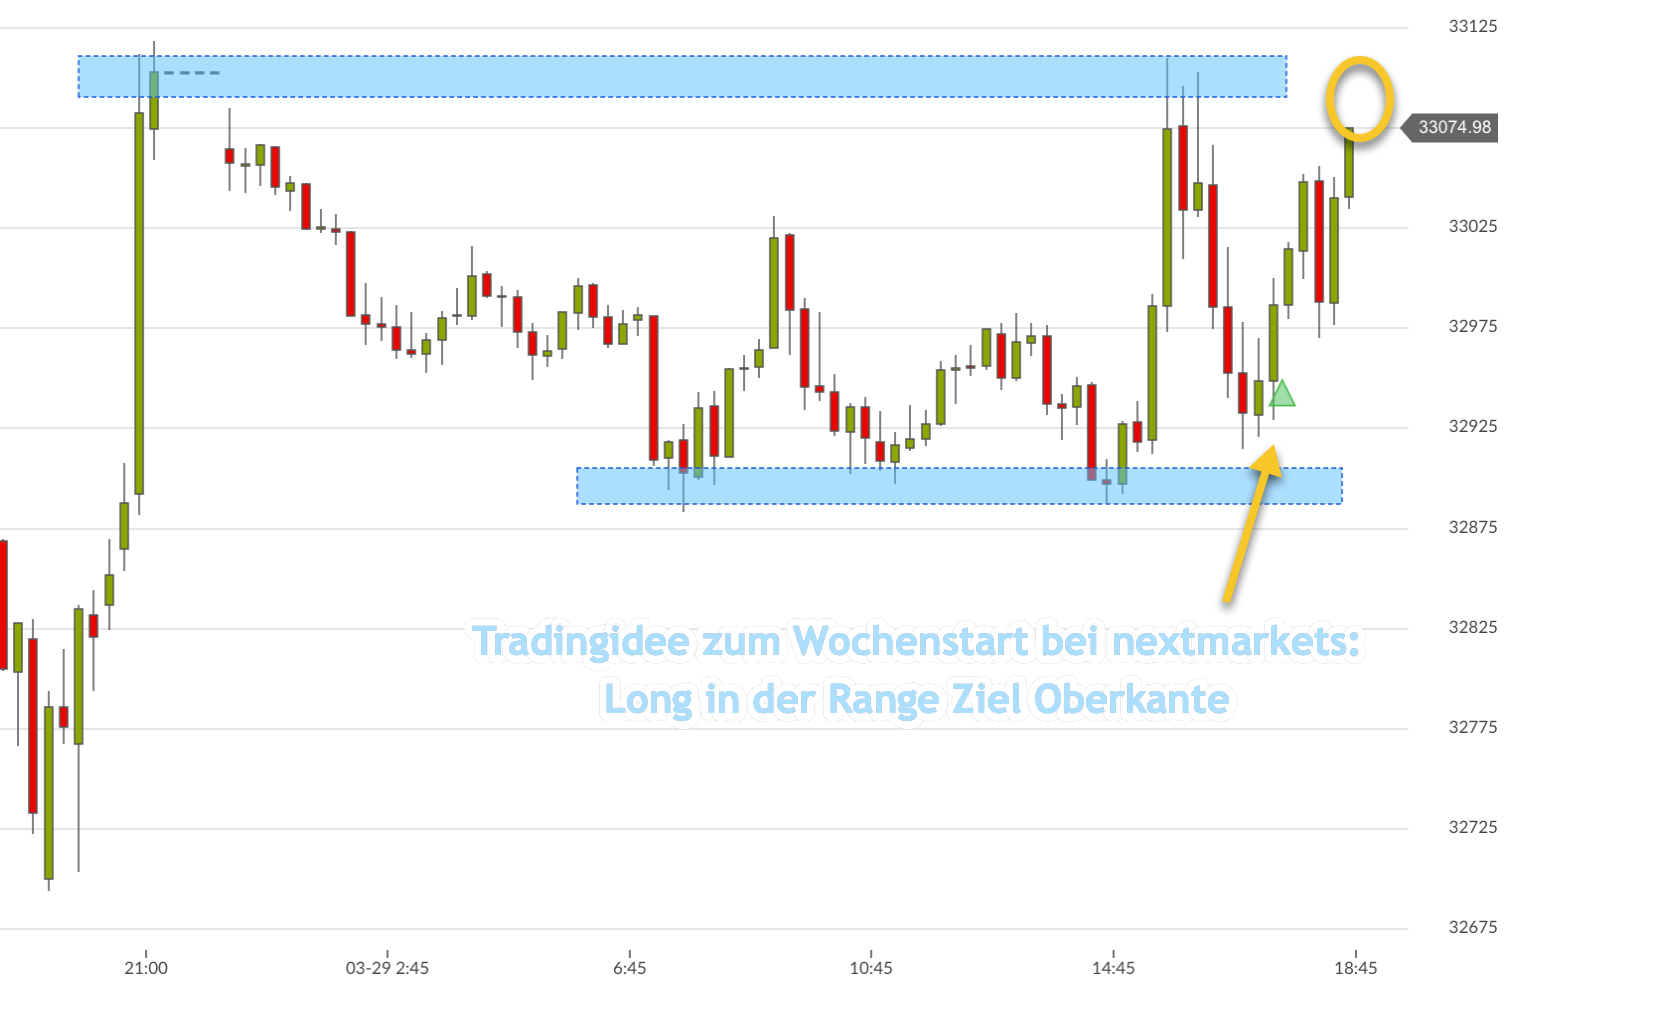 Dow Jones Trade bei nextmarkets